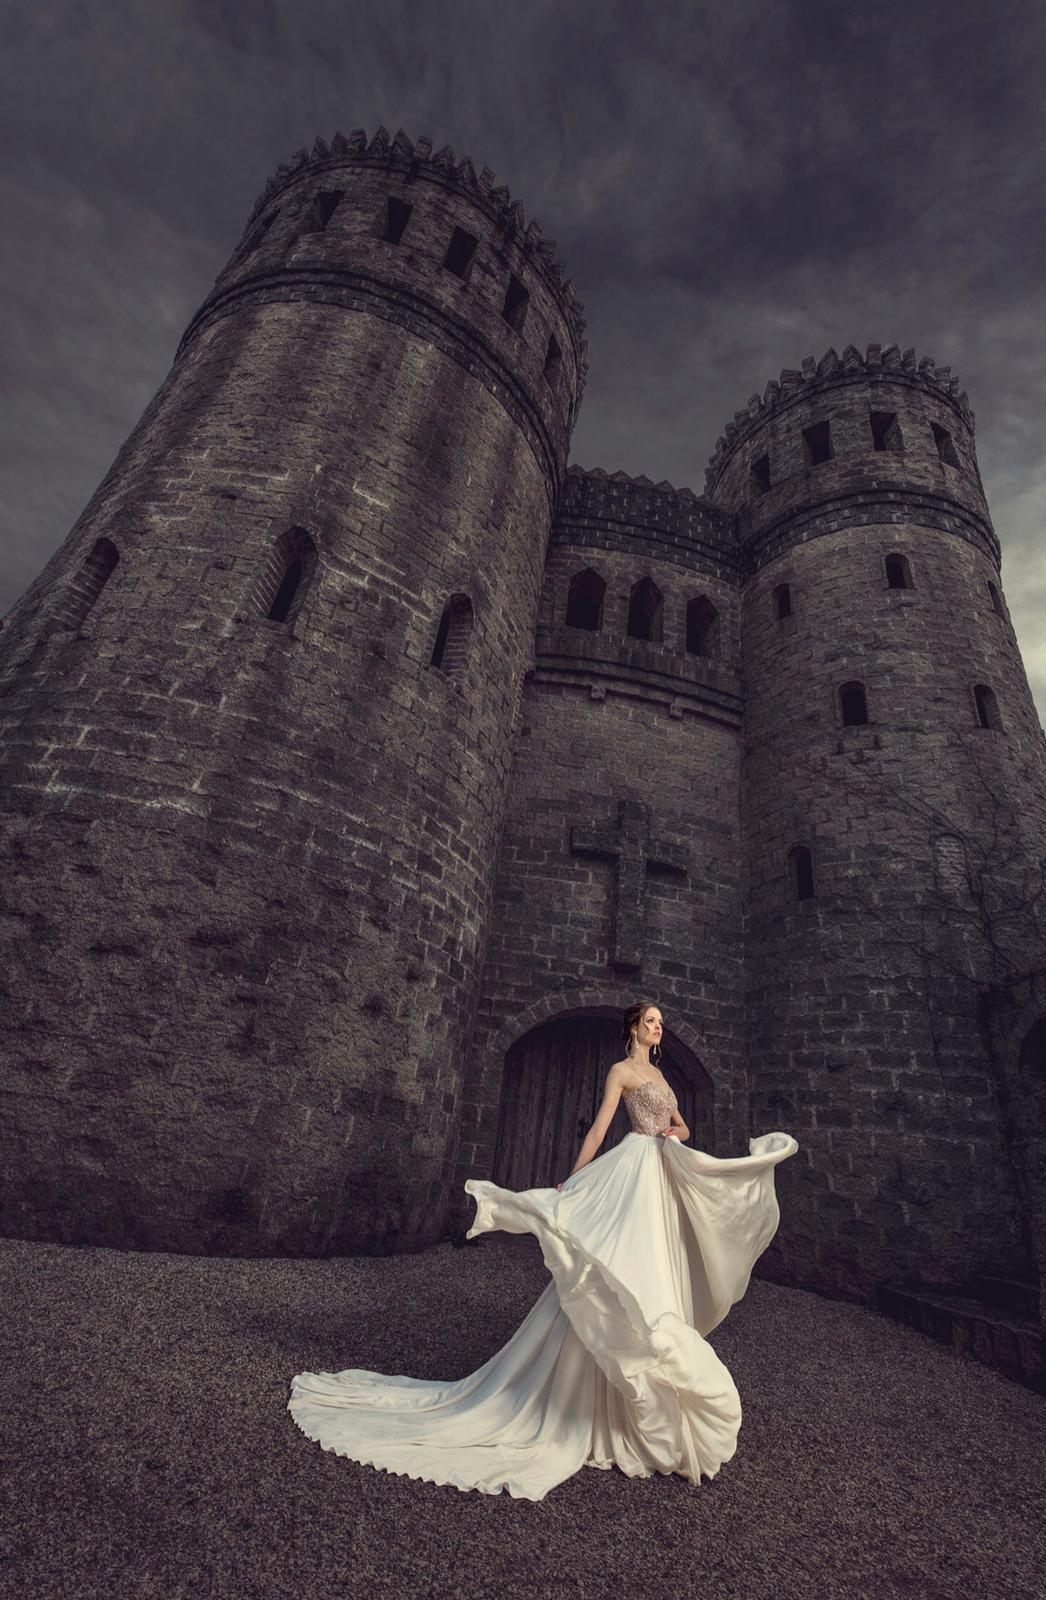 Step 7: Sign a contract and make a payment - Wedding Photography | Orlando, Miami, Tampa, Jacksonville, St.Augustine, FL